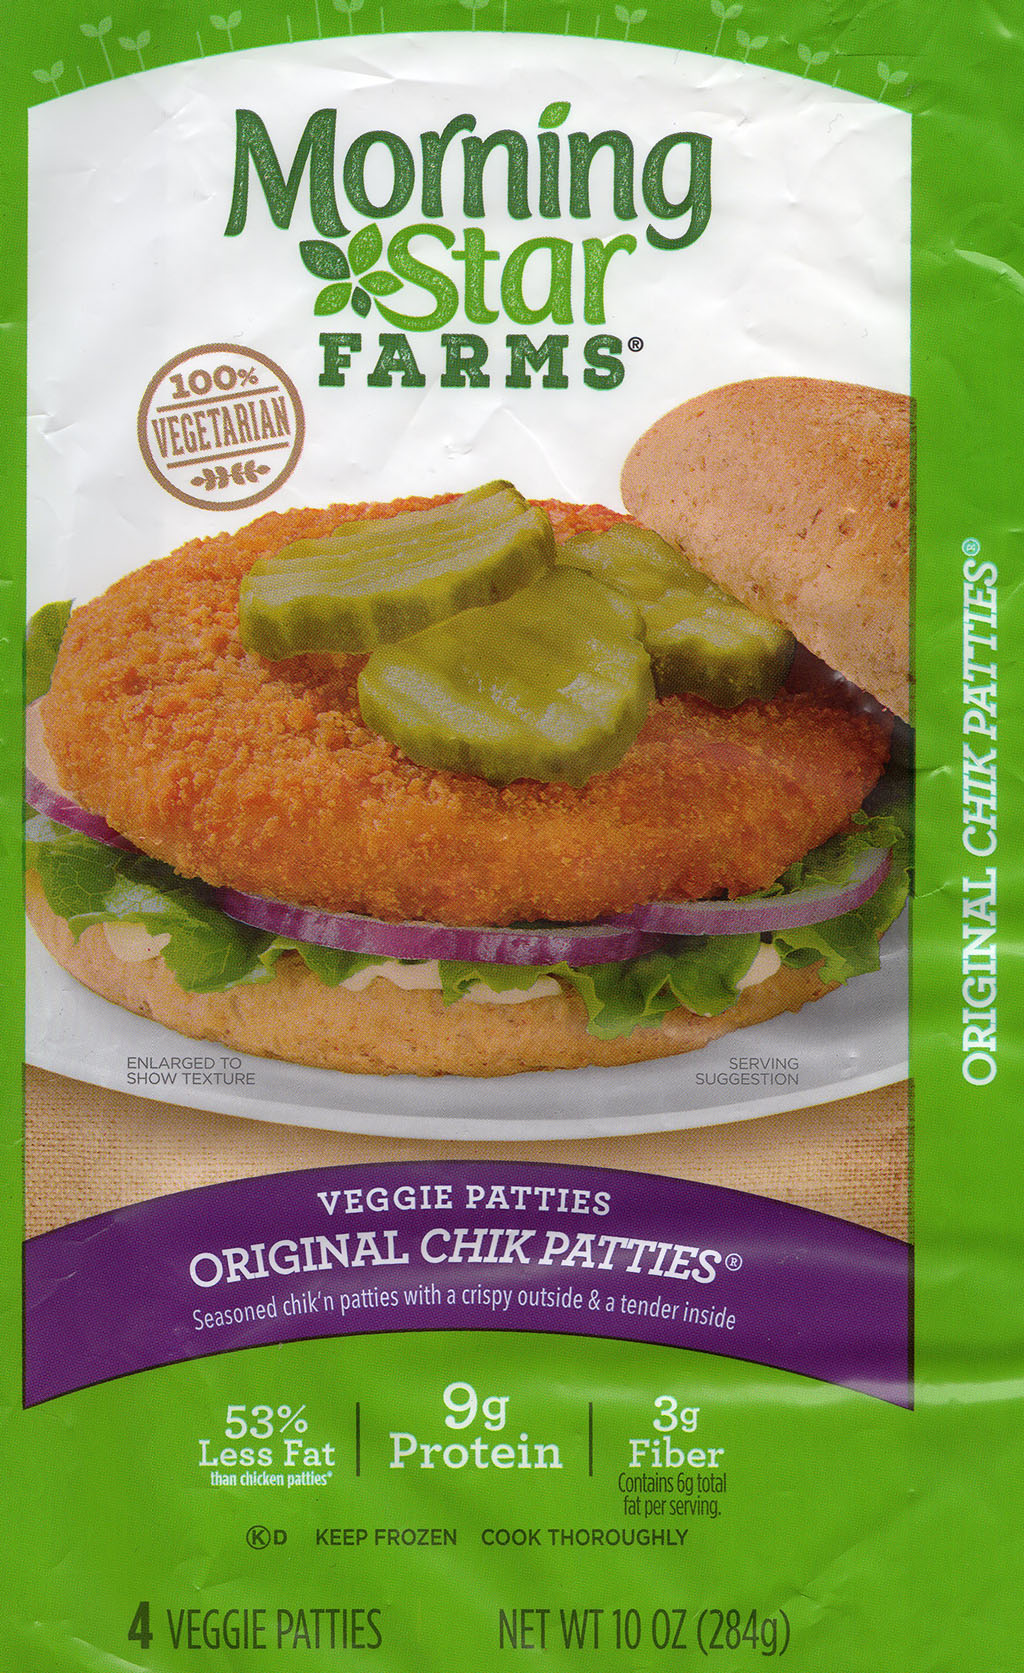 MorningStar Farms Buffalo Chik Patties package front